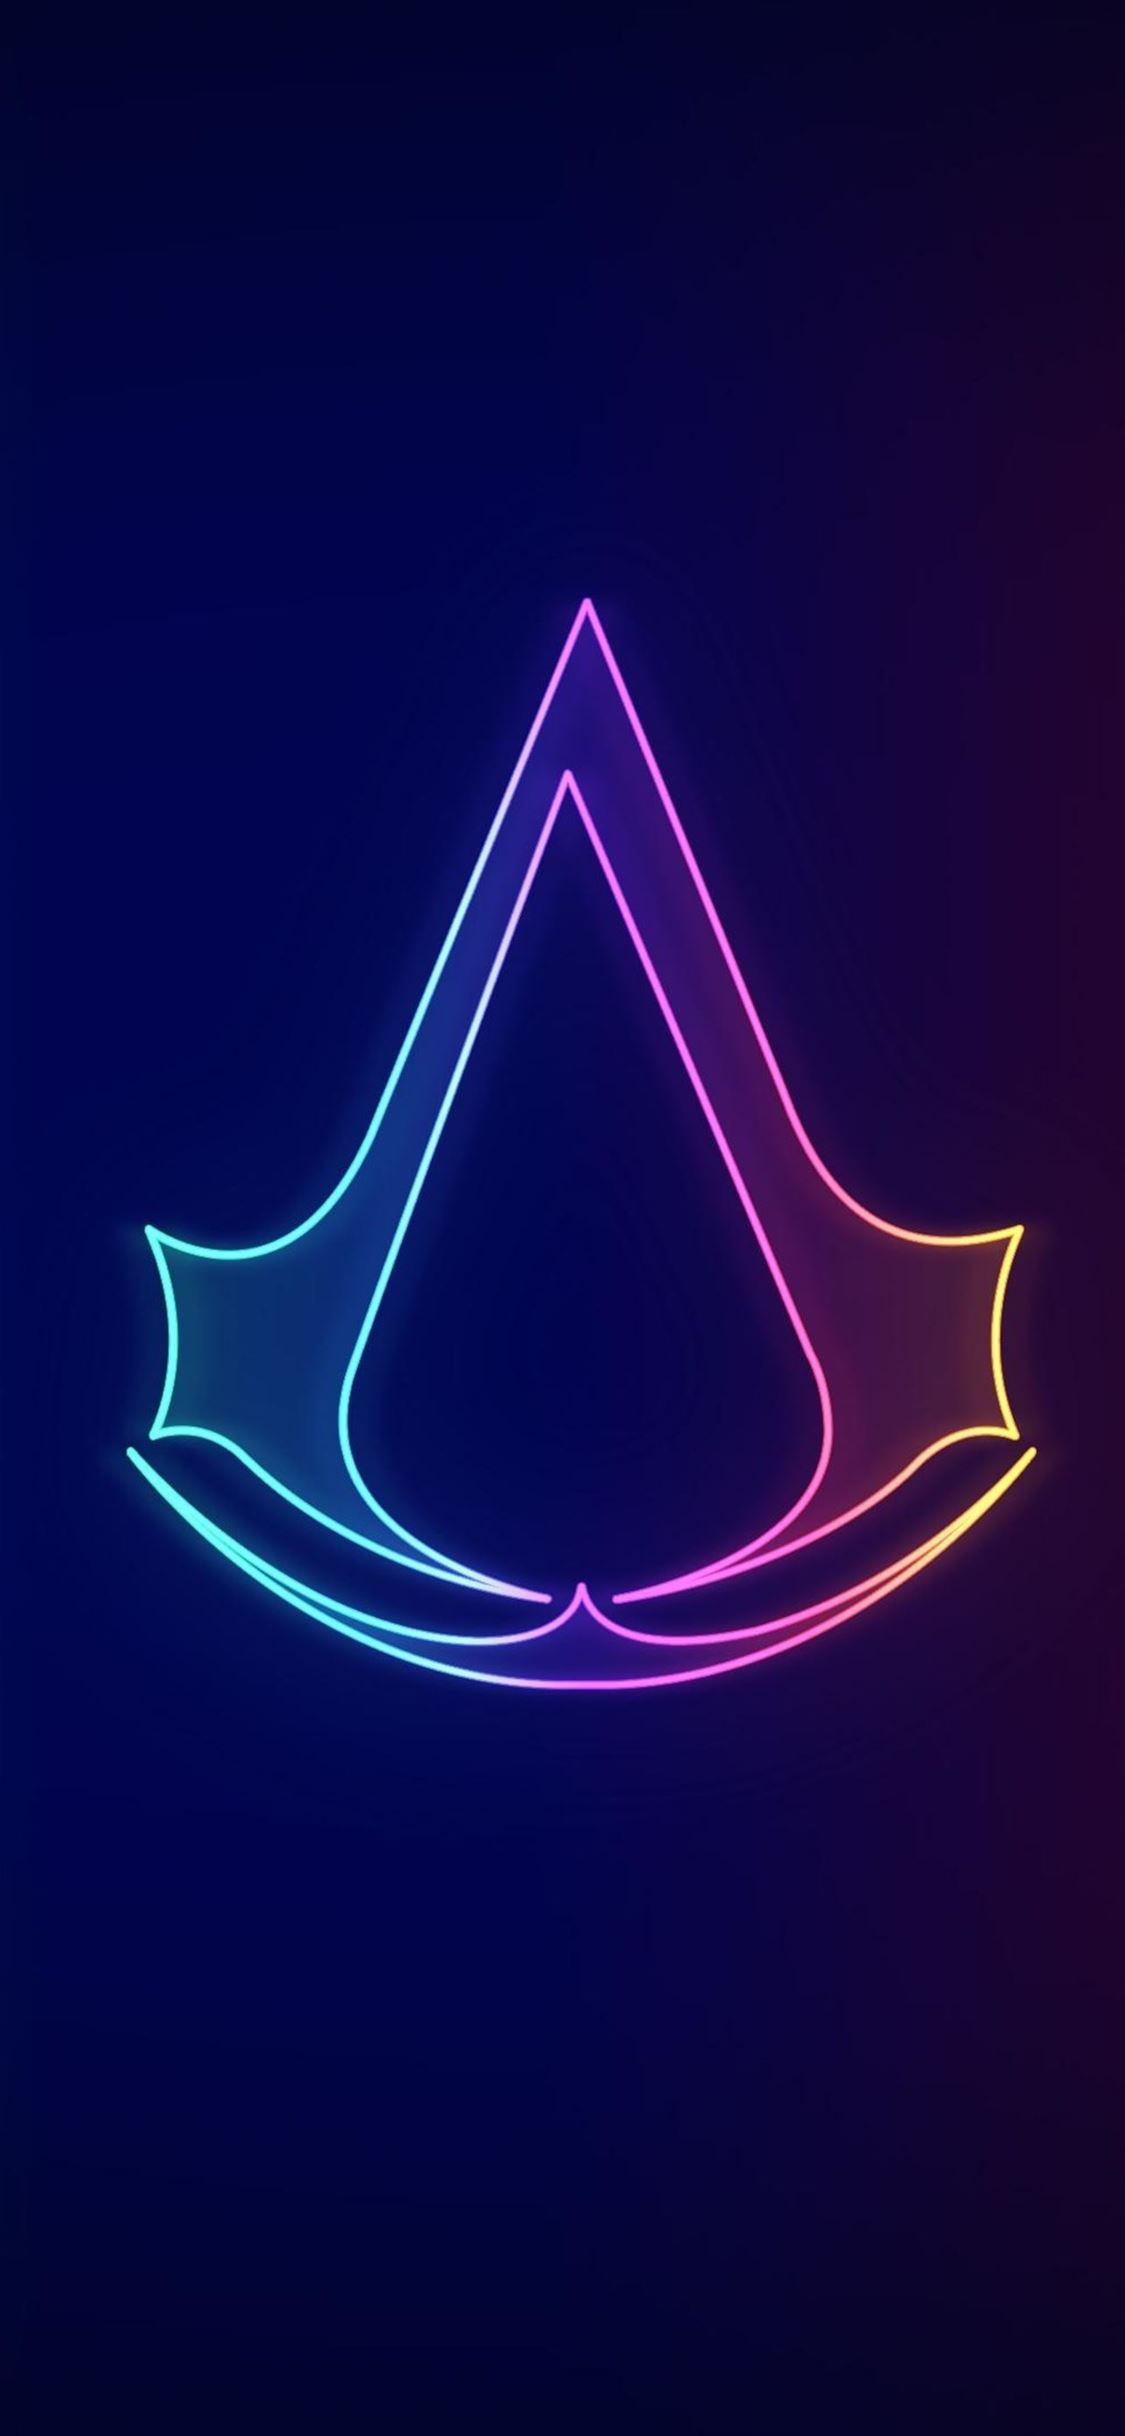 Best Assassins Creed Iphone X Wallpapers Hd Ilikewallpaper